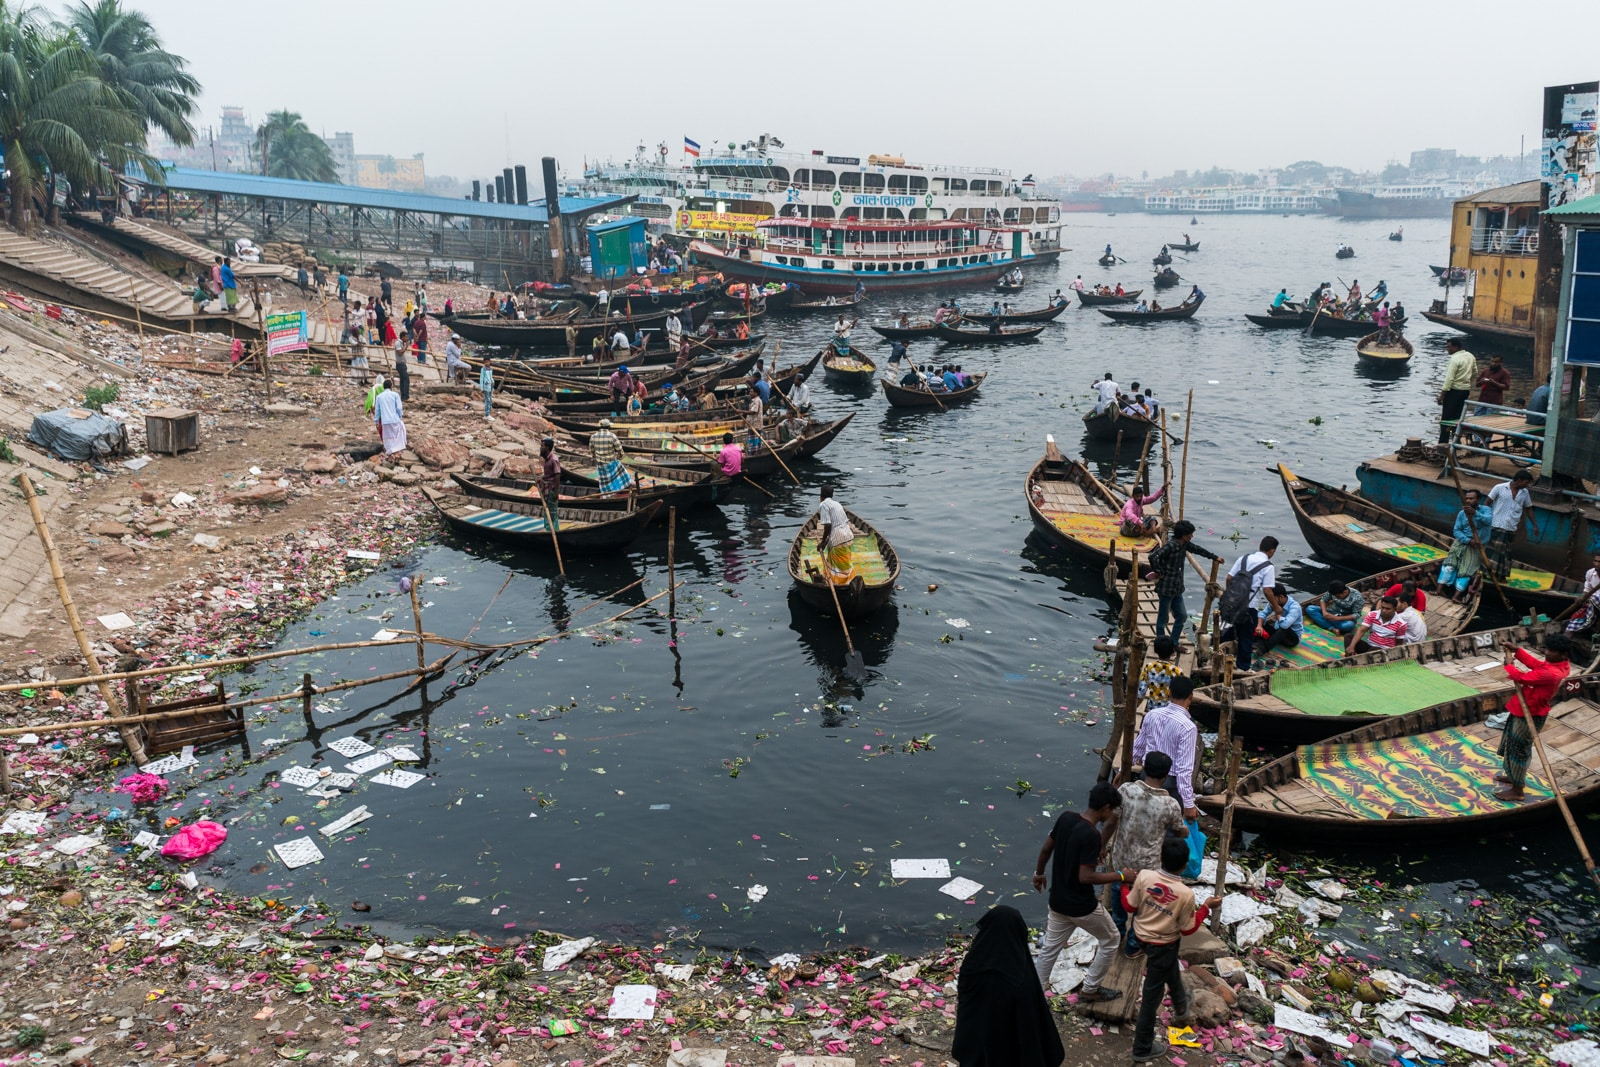 Guide to launches in Bangladesh - Black Buriganga river water in Dhaka - Lost With Purpose travel blog